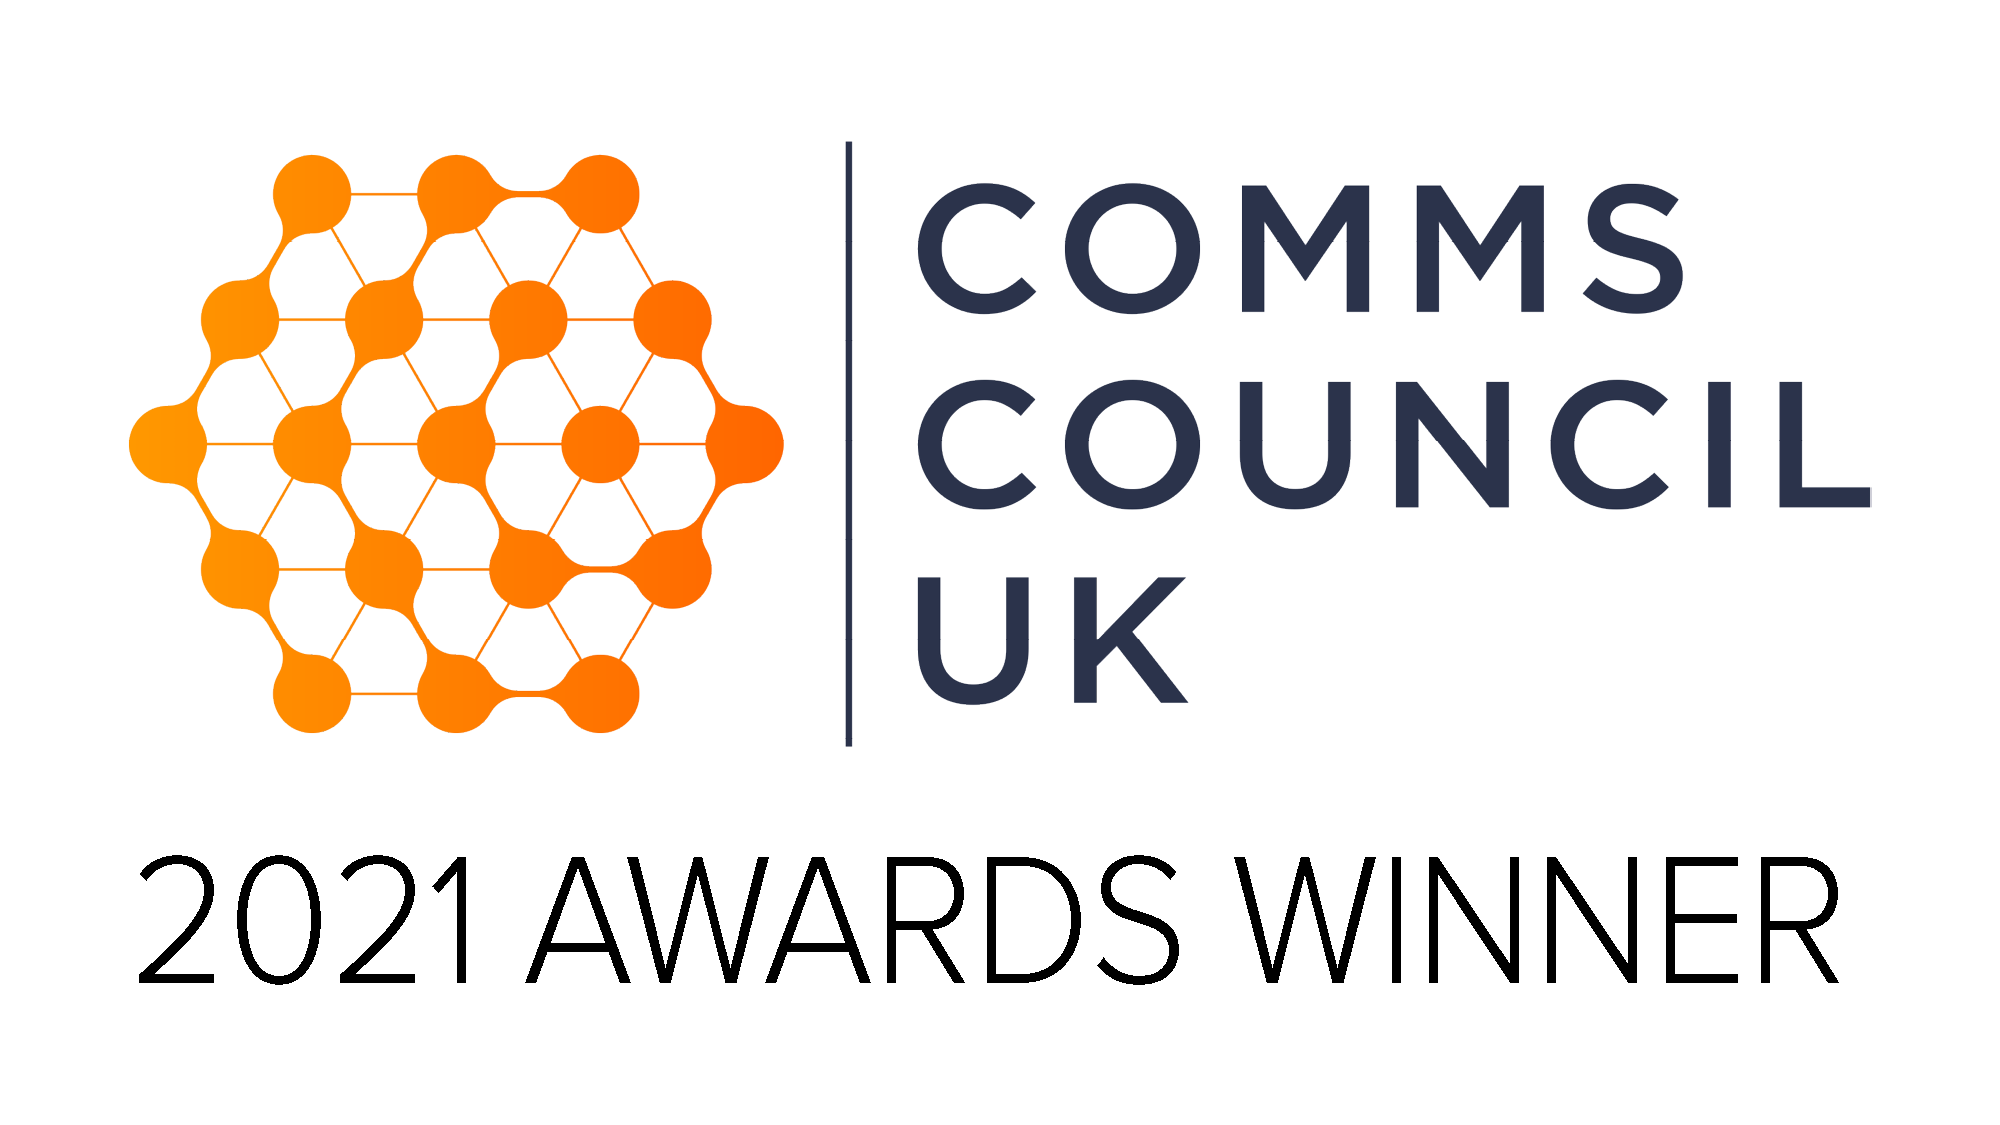 comms council 2021 awards winner image